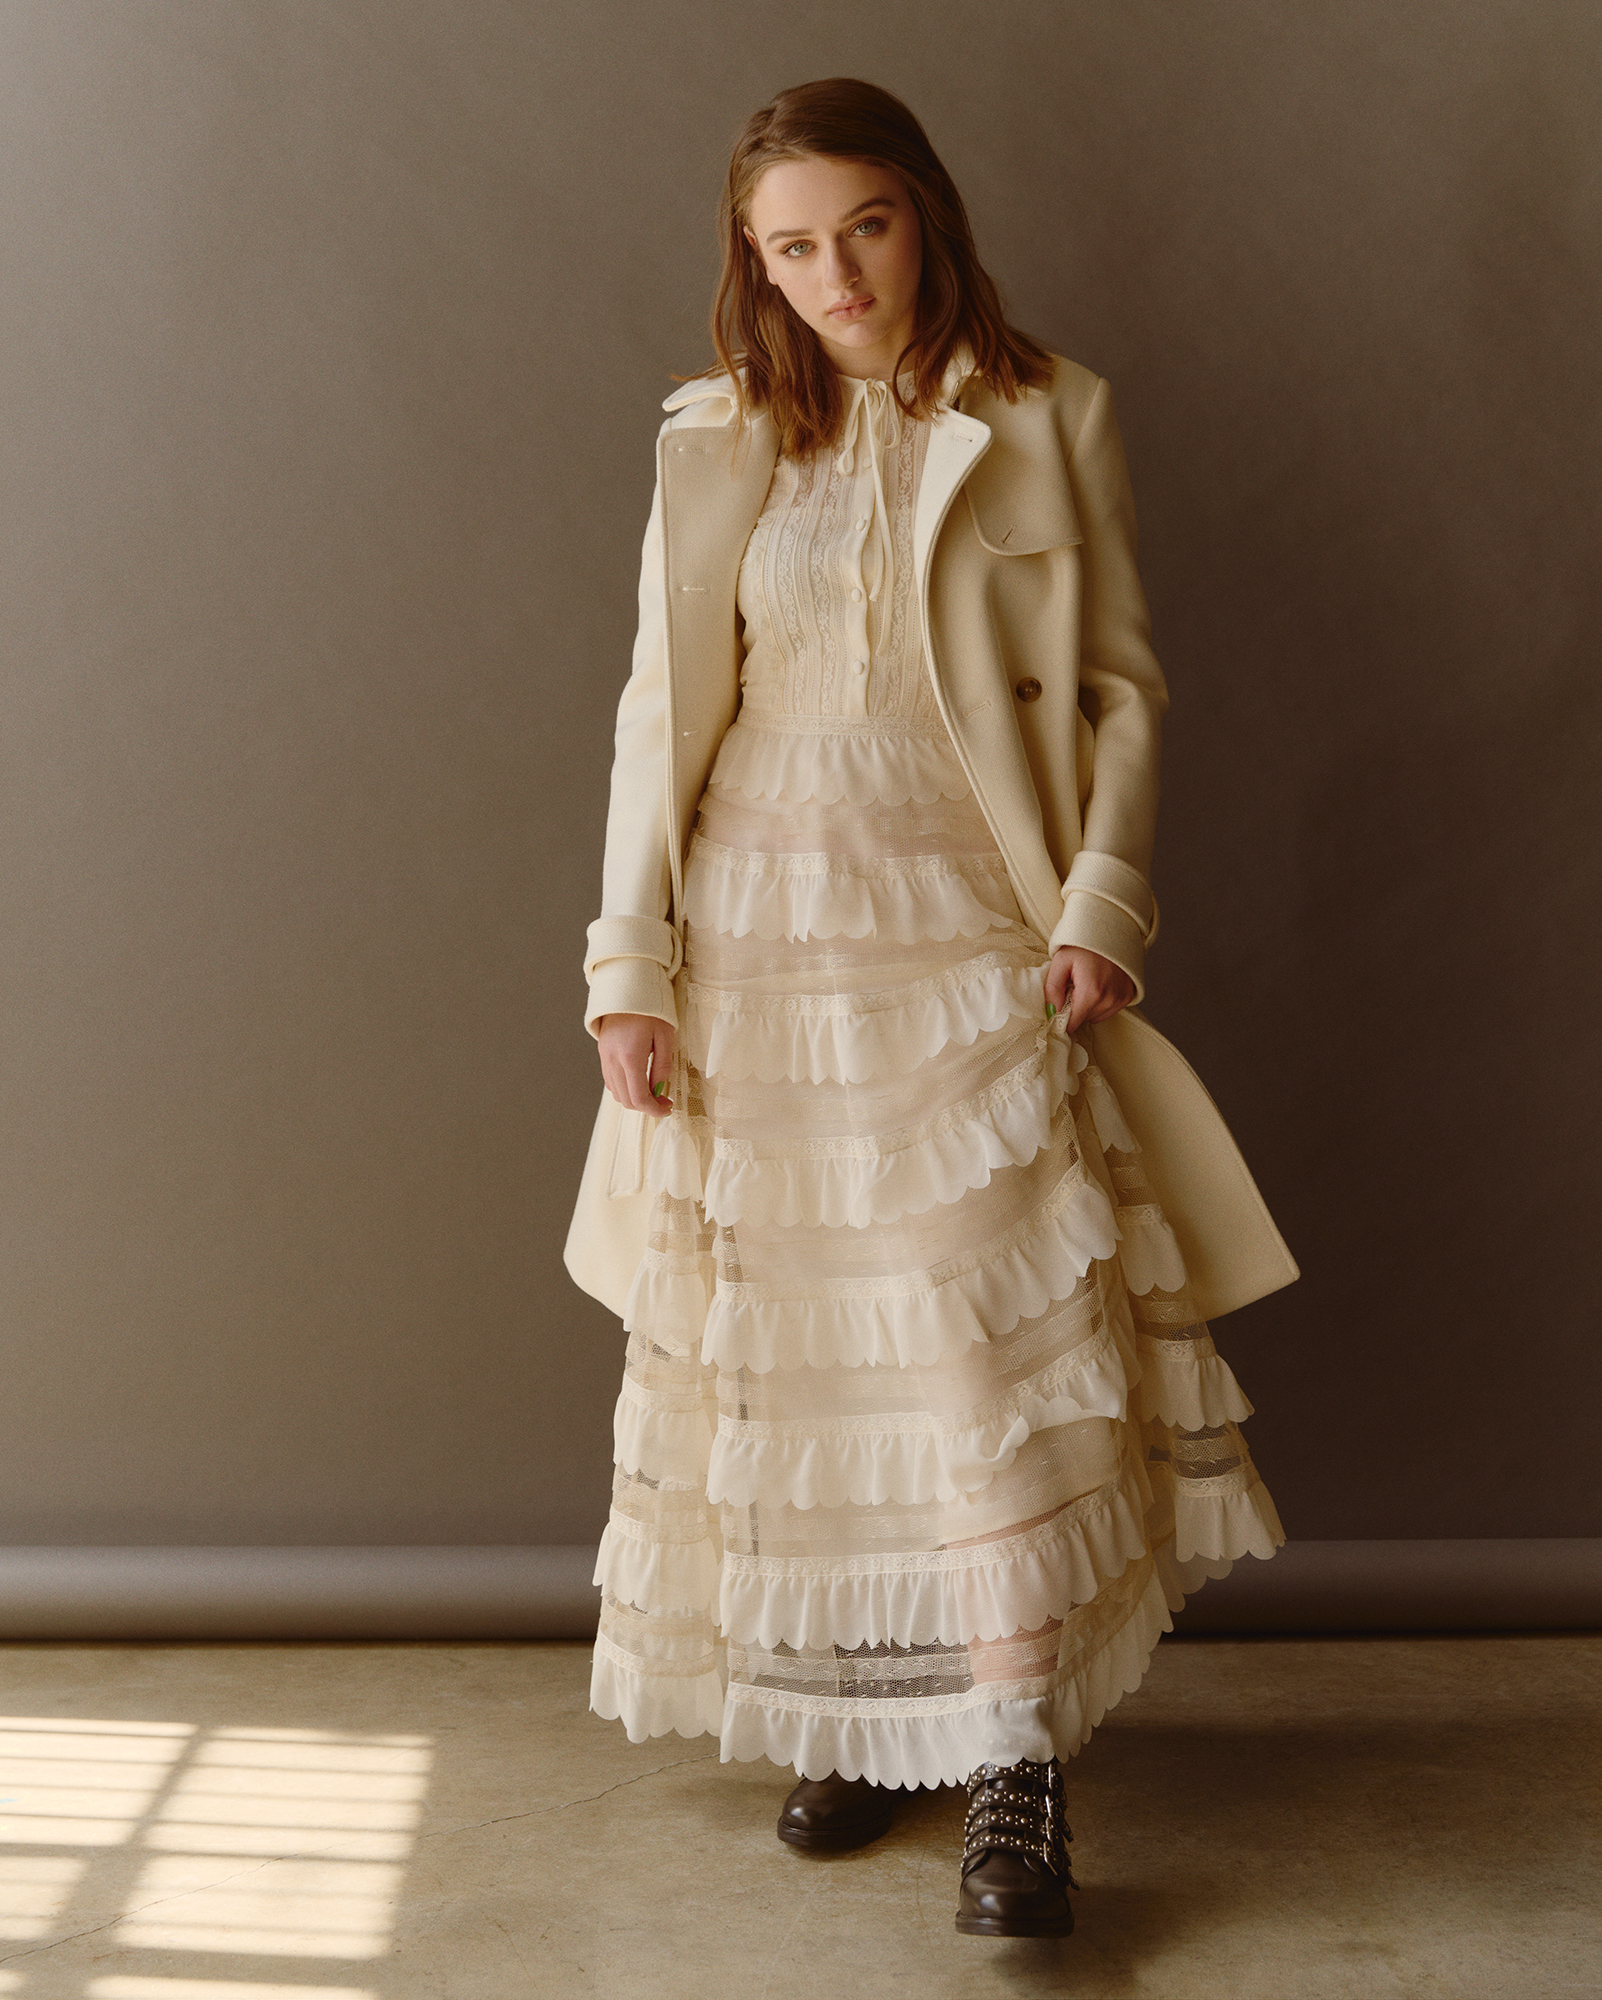 Dress and coat by   REDVALENTINO  ;Boots by   MAJE   /   Bloomingdales Beverly Center